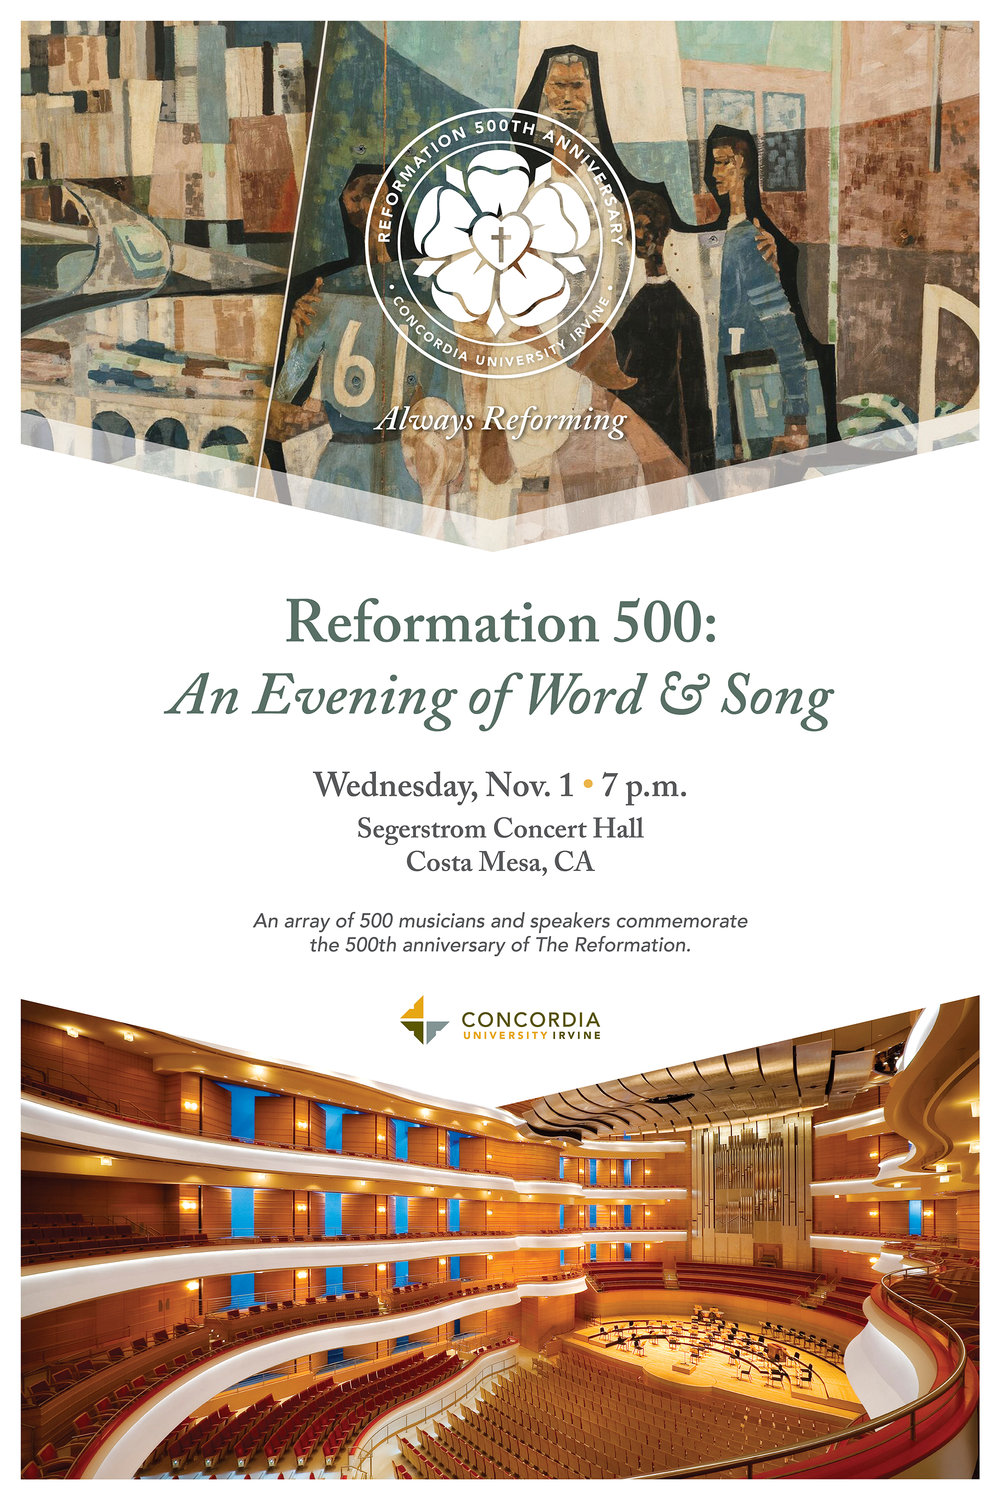 Reformation 500 An Evening of Word and Song - 24x36.jpg